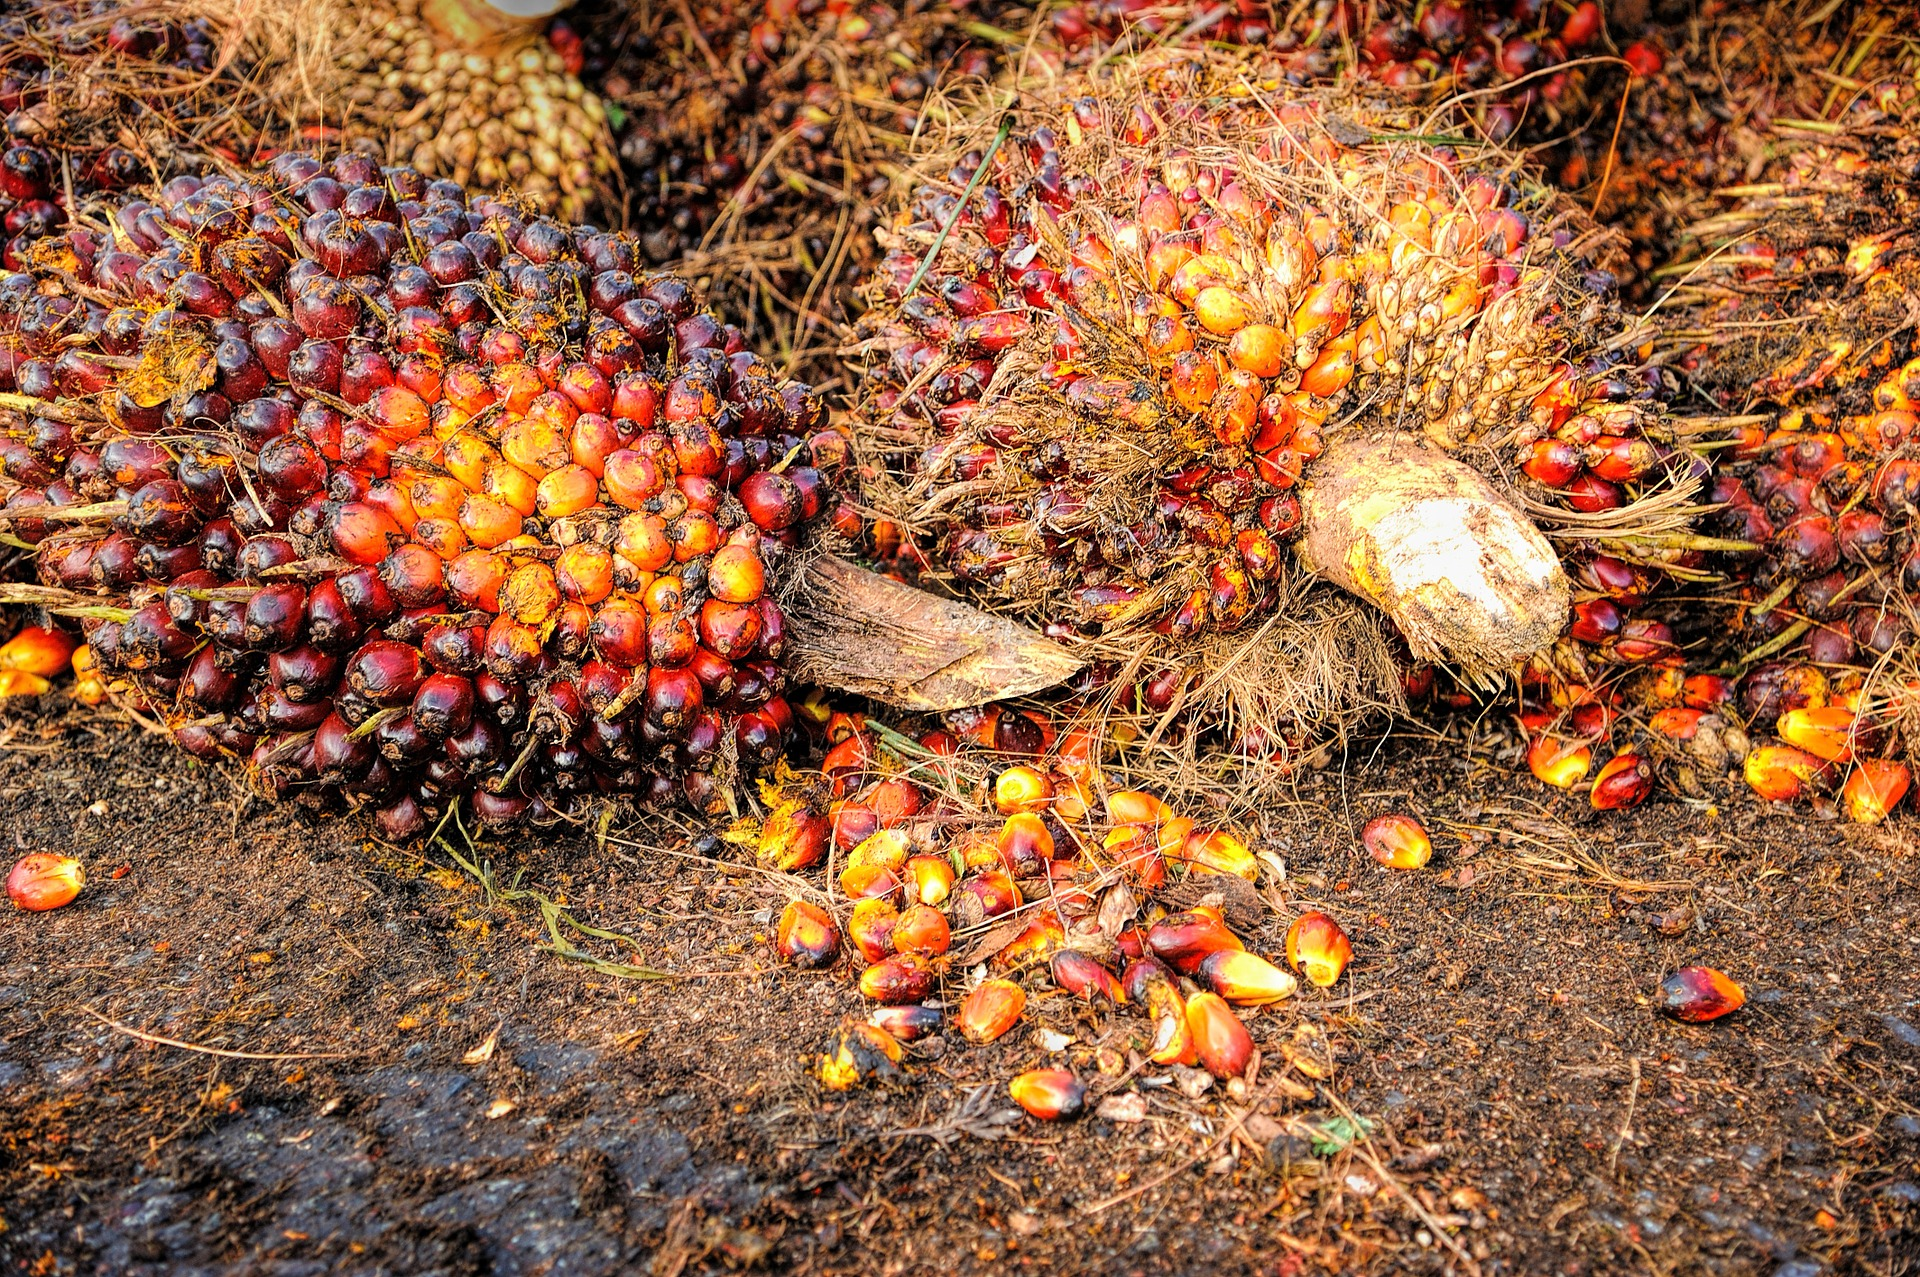 Palm oil processing business in Nigeria